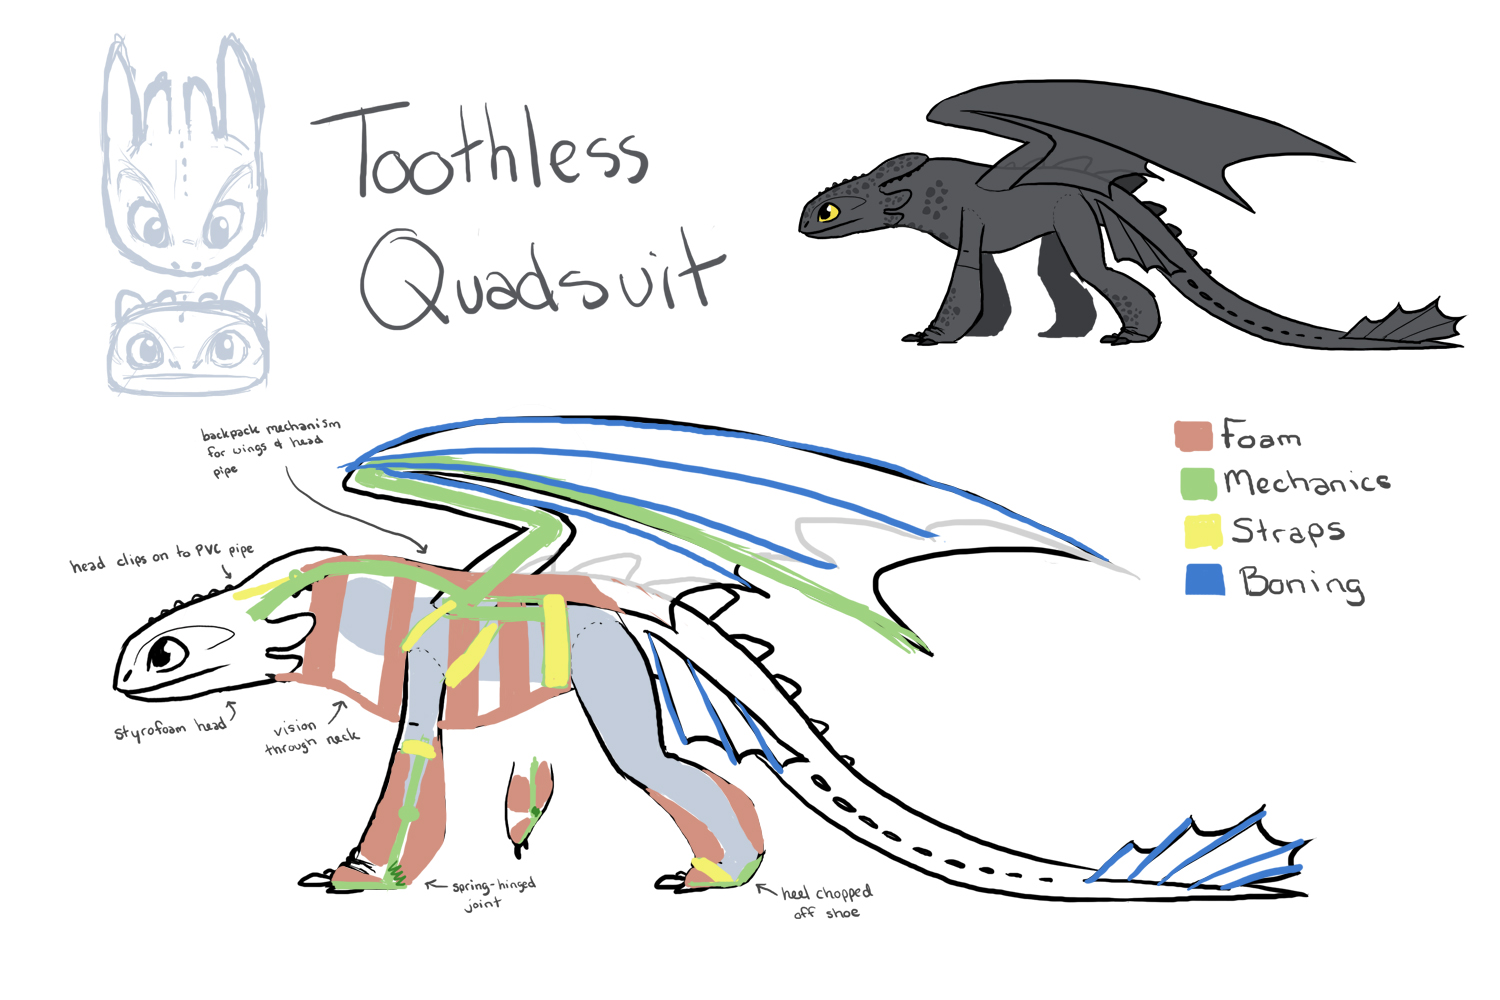 Toothless Quadsuit Idea By Noobybanana